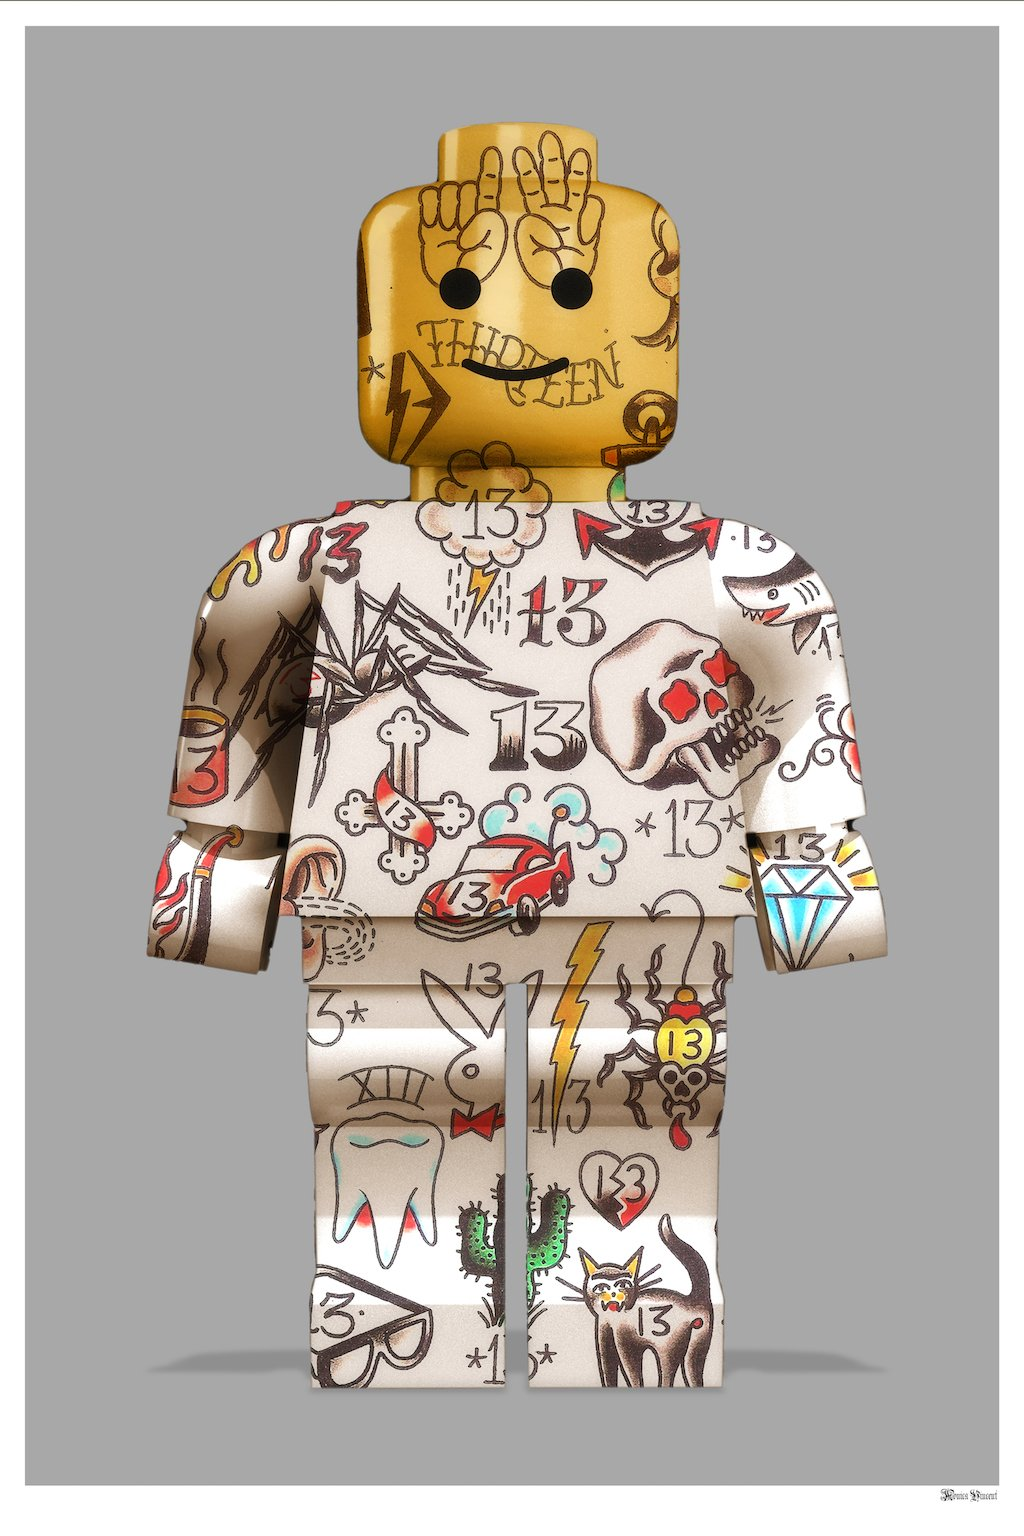 Graffiti Lego Man (Grey Background) - Large  by Monica Vincent